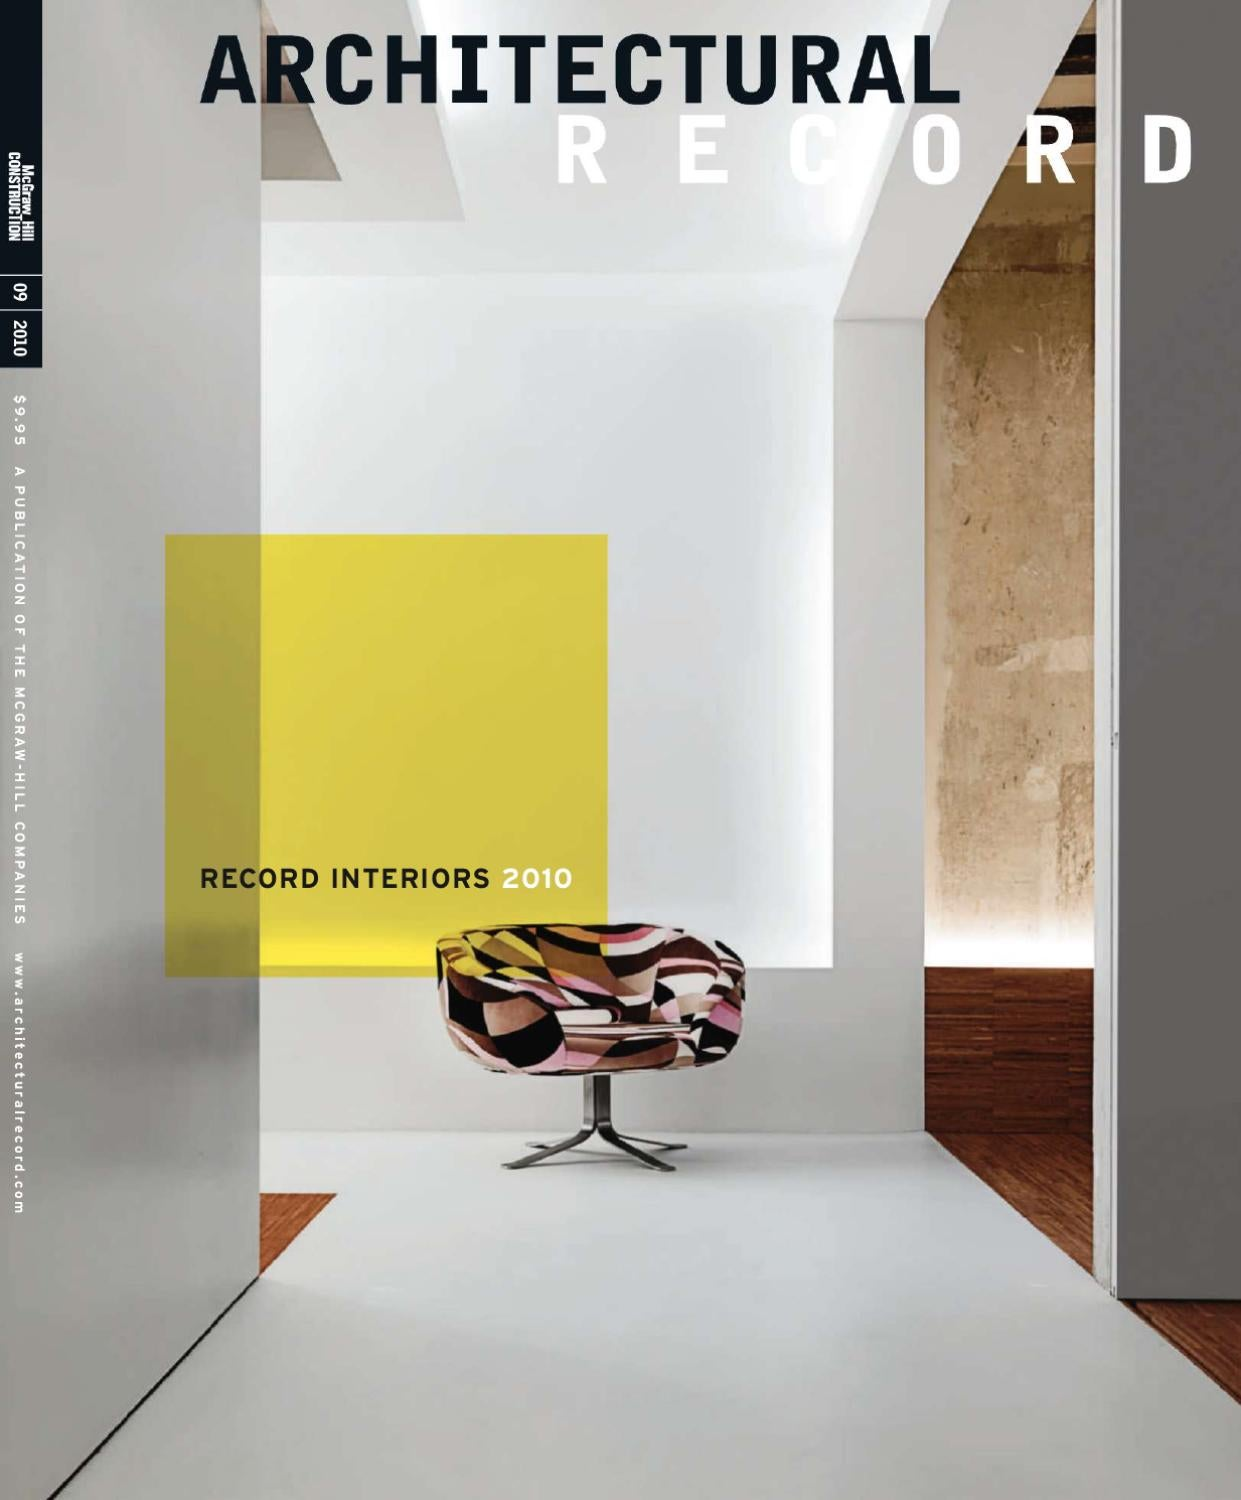 Architectural record 09 2010 by guilherme farias issuu